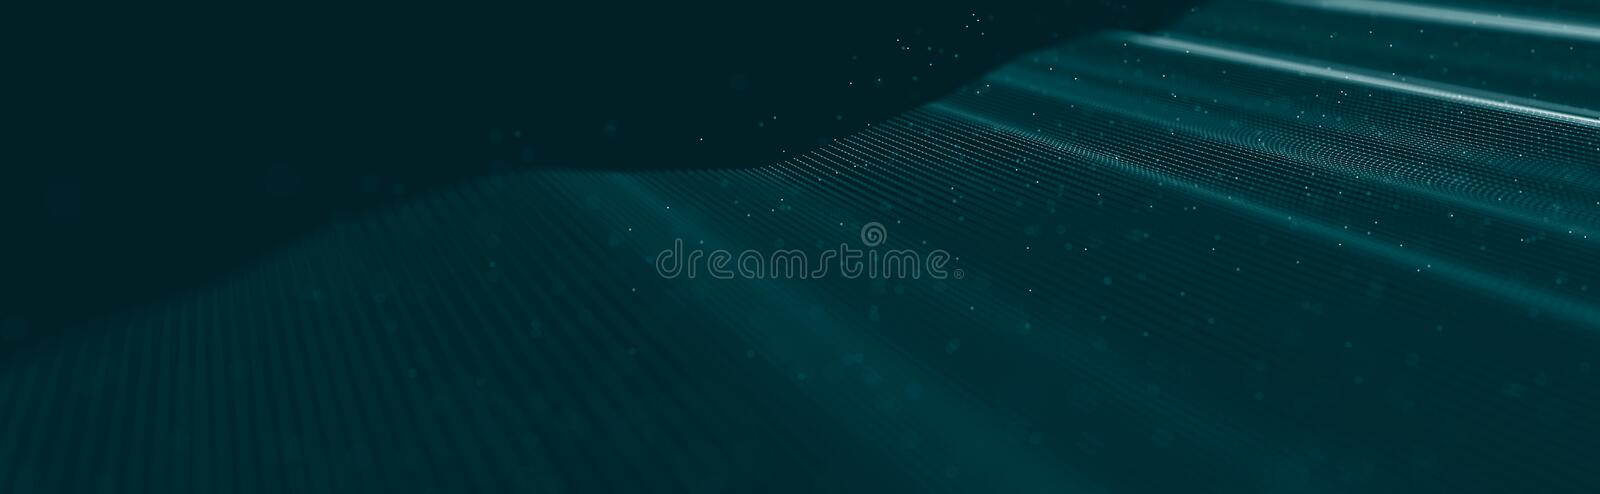 Musical wave of particles. Sound structural connections. Abstract background with a wave of luminous particles. Wave 3d stock photography